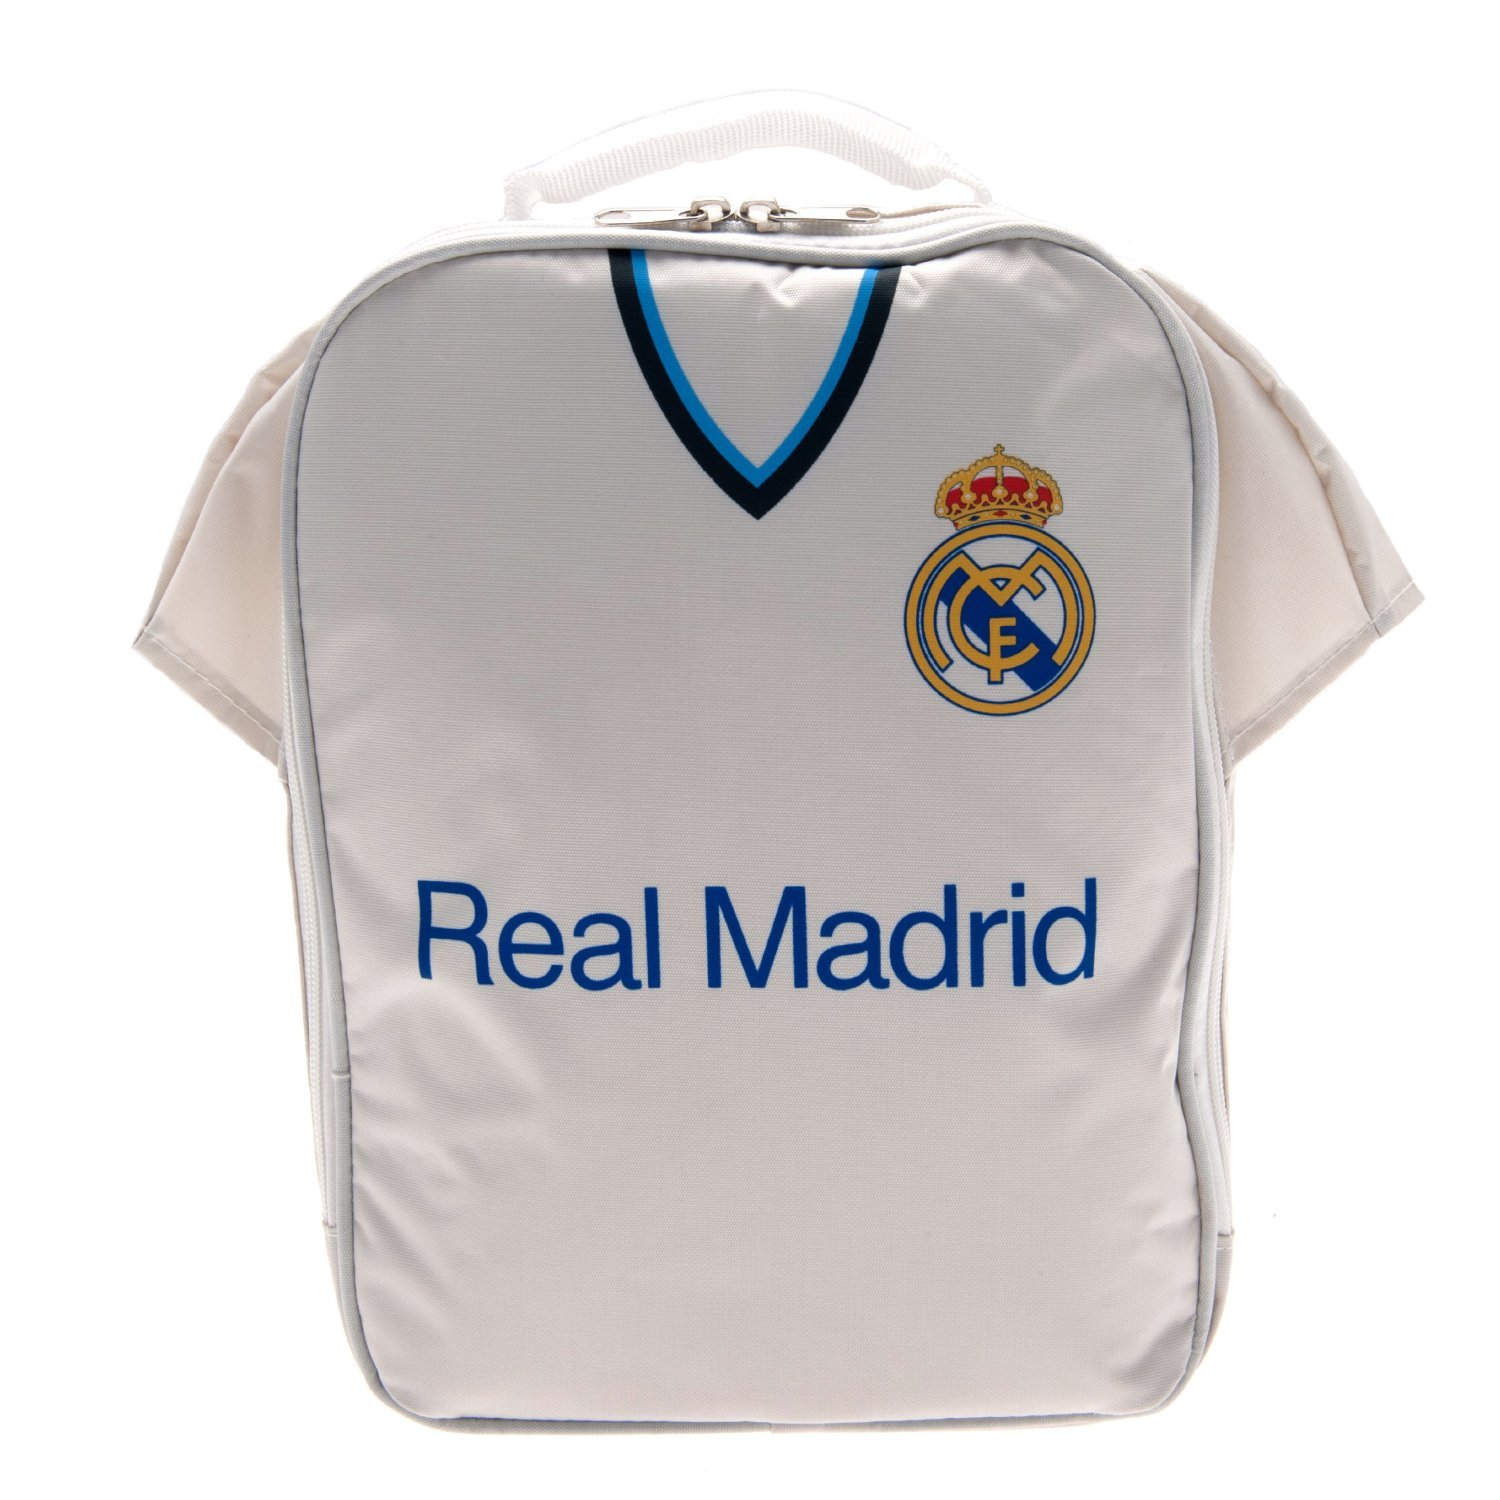 b1d044f7c Get Quotations · Real Madrid Kit Lunch Bag